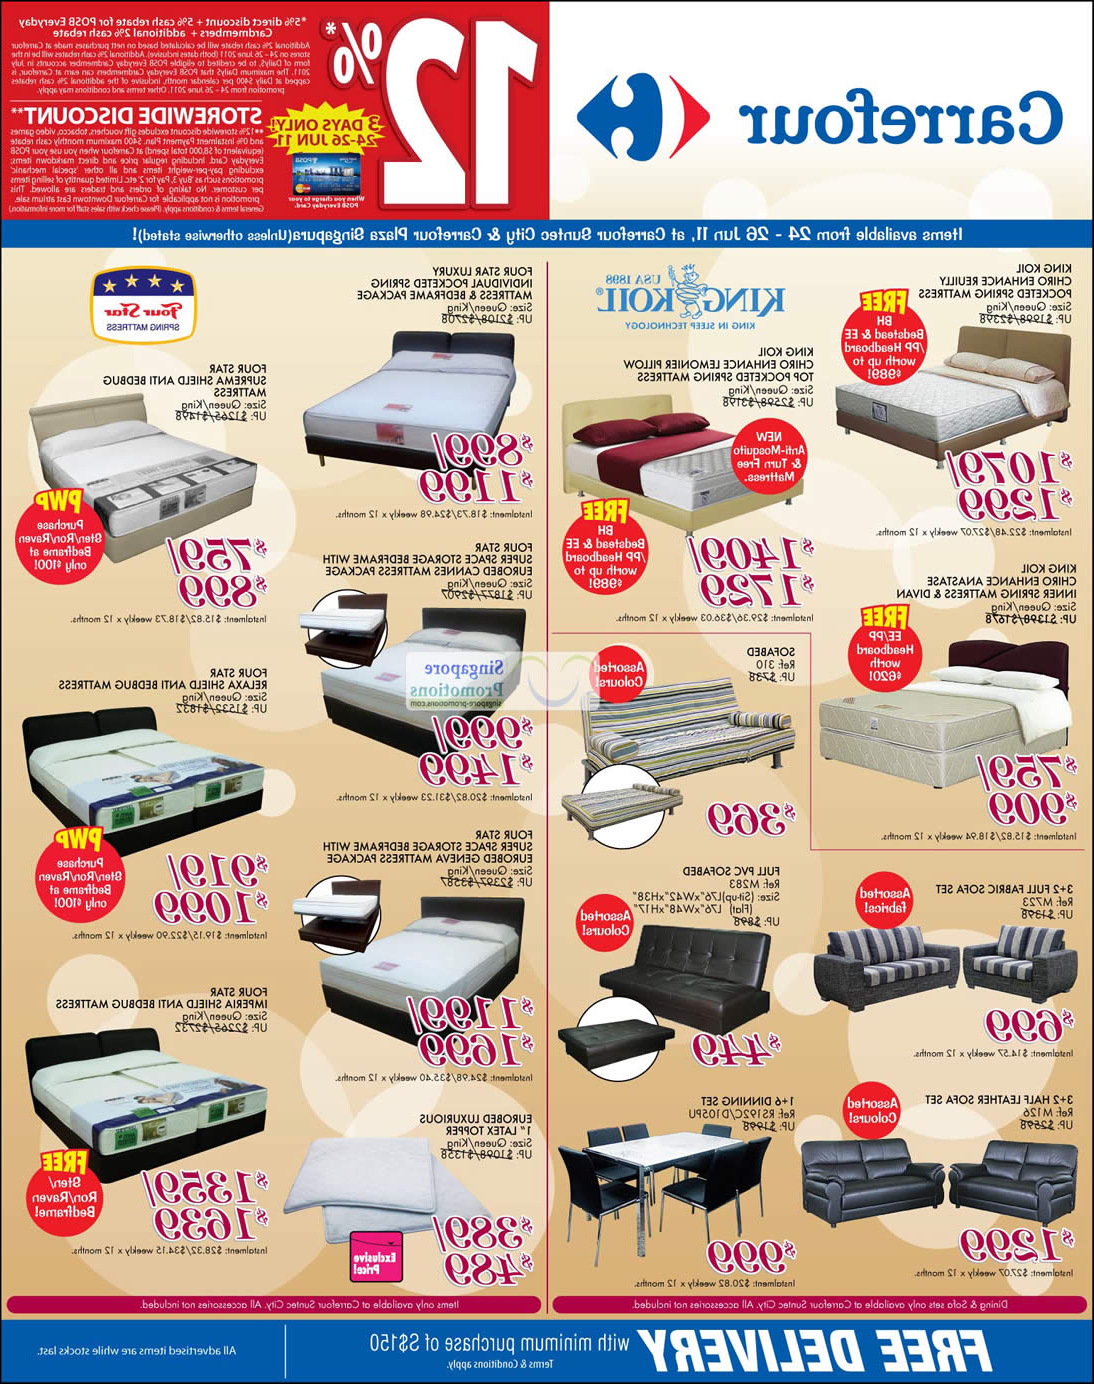 Sofas En Carrefour Budm Carrefour Home Appliances sofas Mattresses Air